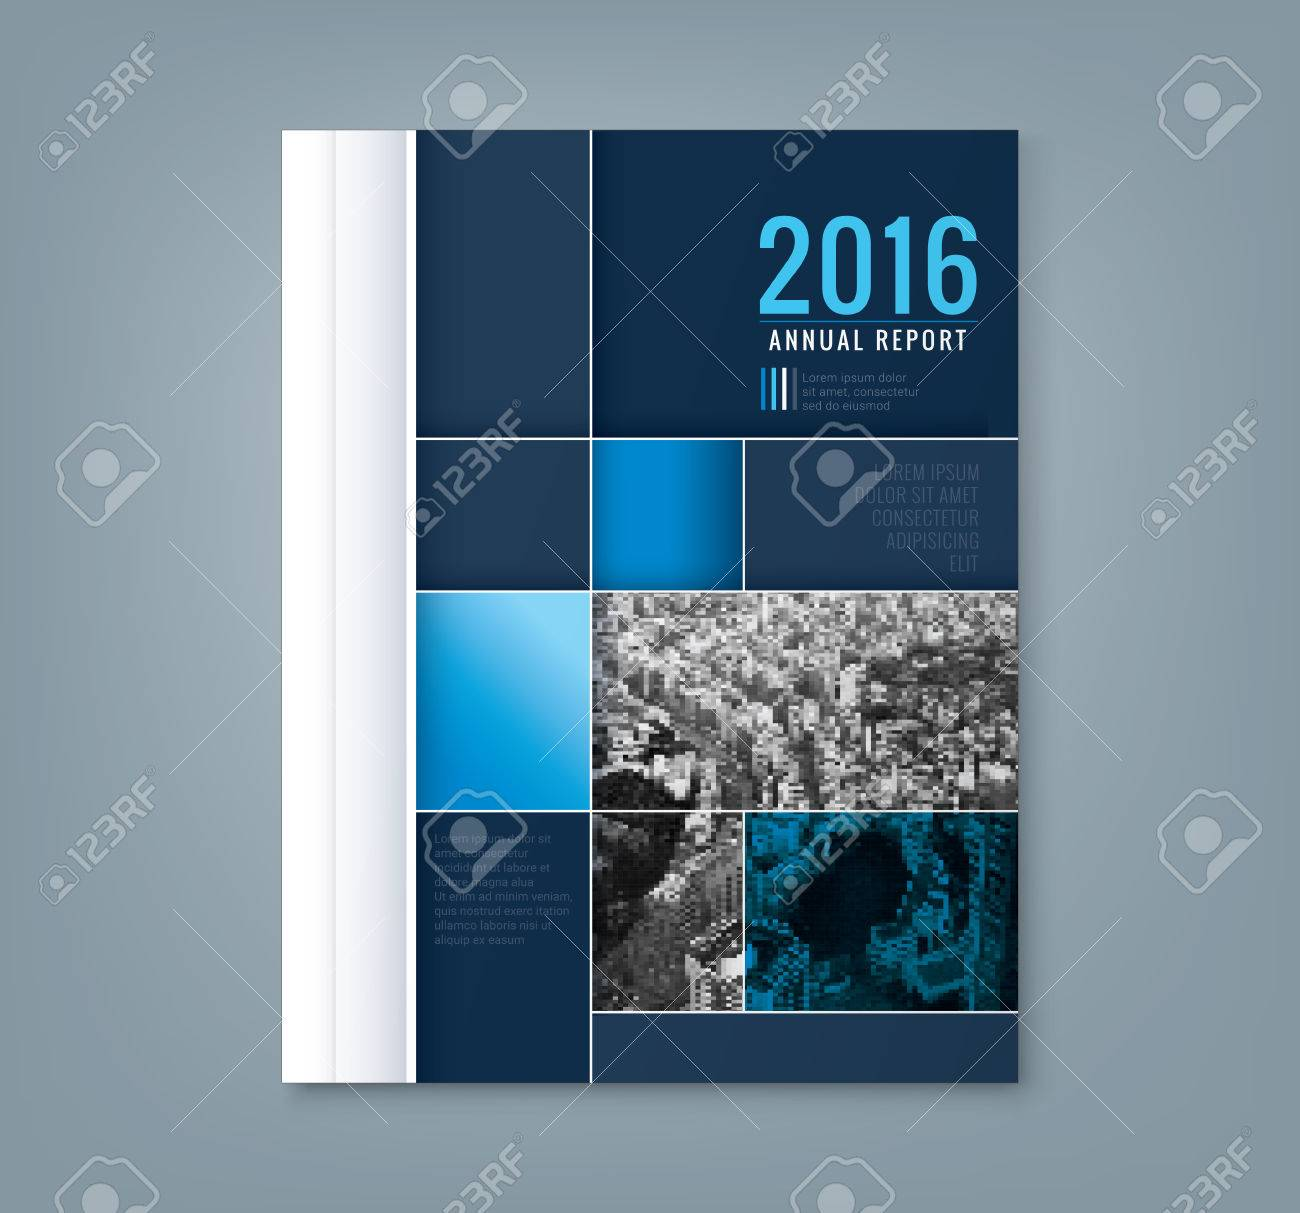 Abstract blue geometric square shape design background template for business annual report book cover brochure flyer poster - 58831033